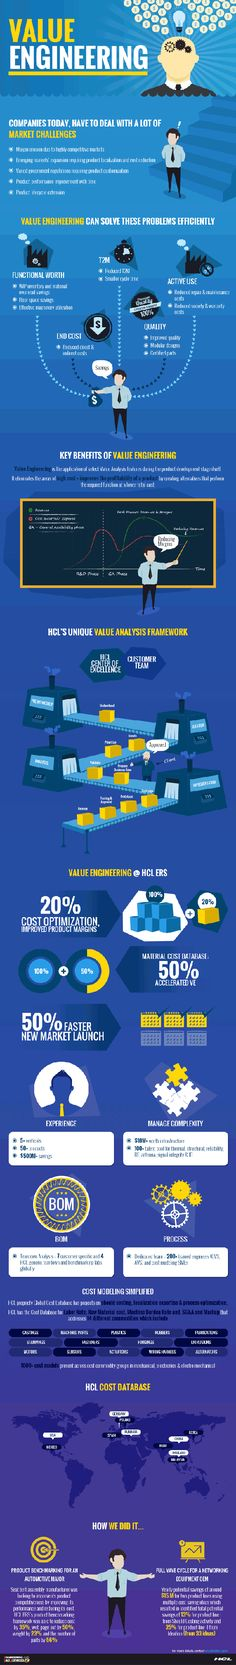 HCL Tech's value engineering is an effective framework which identifies and eliminates areas of high cost and improves the profitability of a product by creating alternatives that perform the required function at a lower total cost.